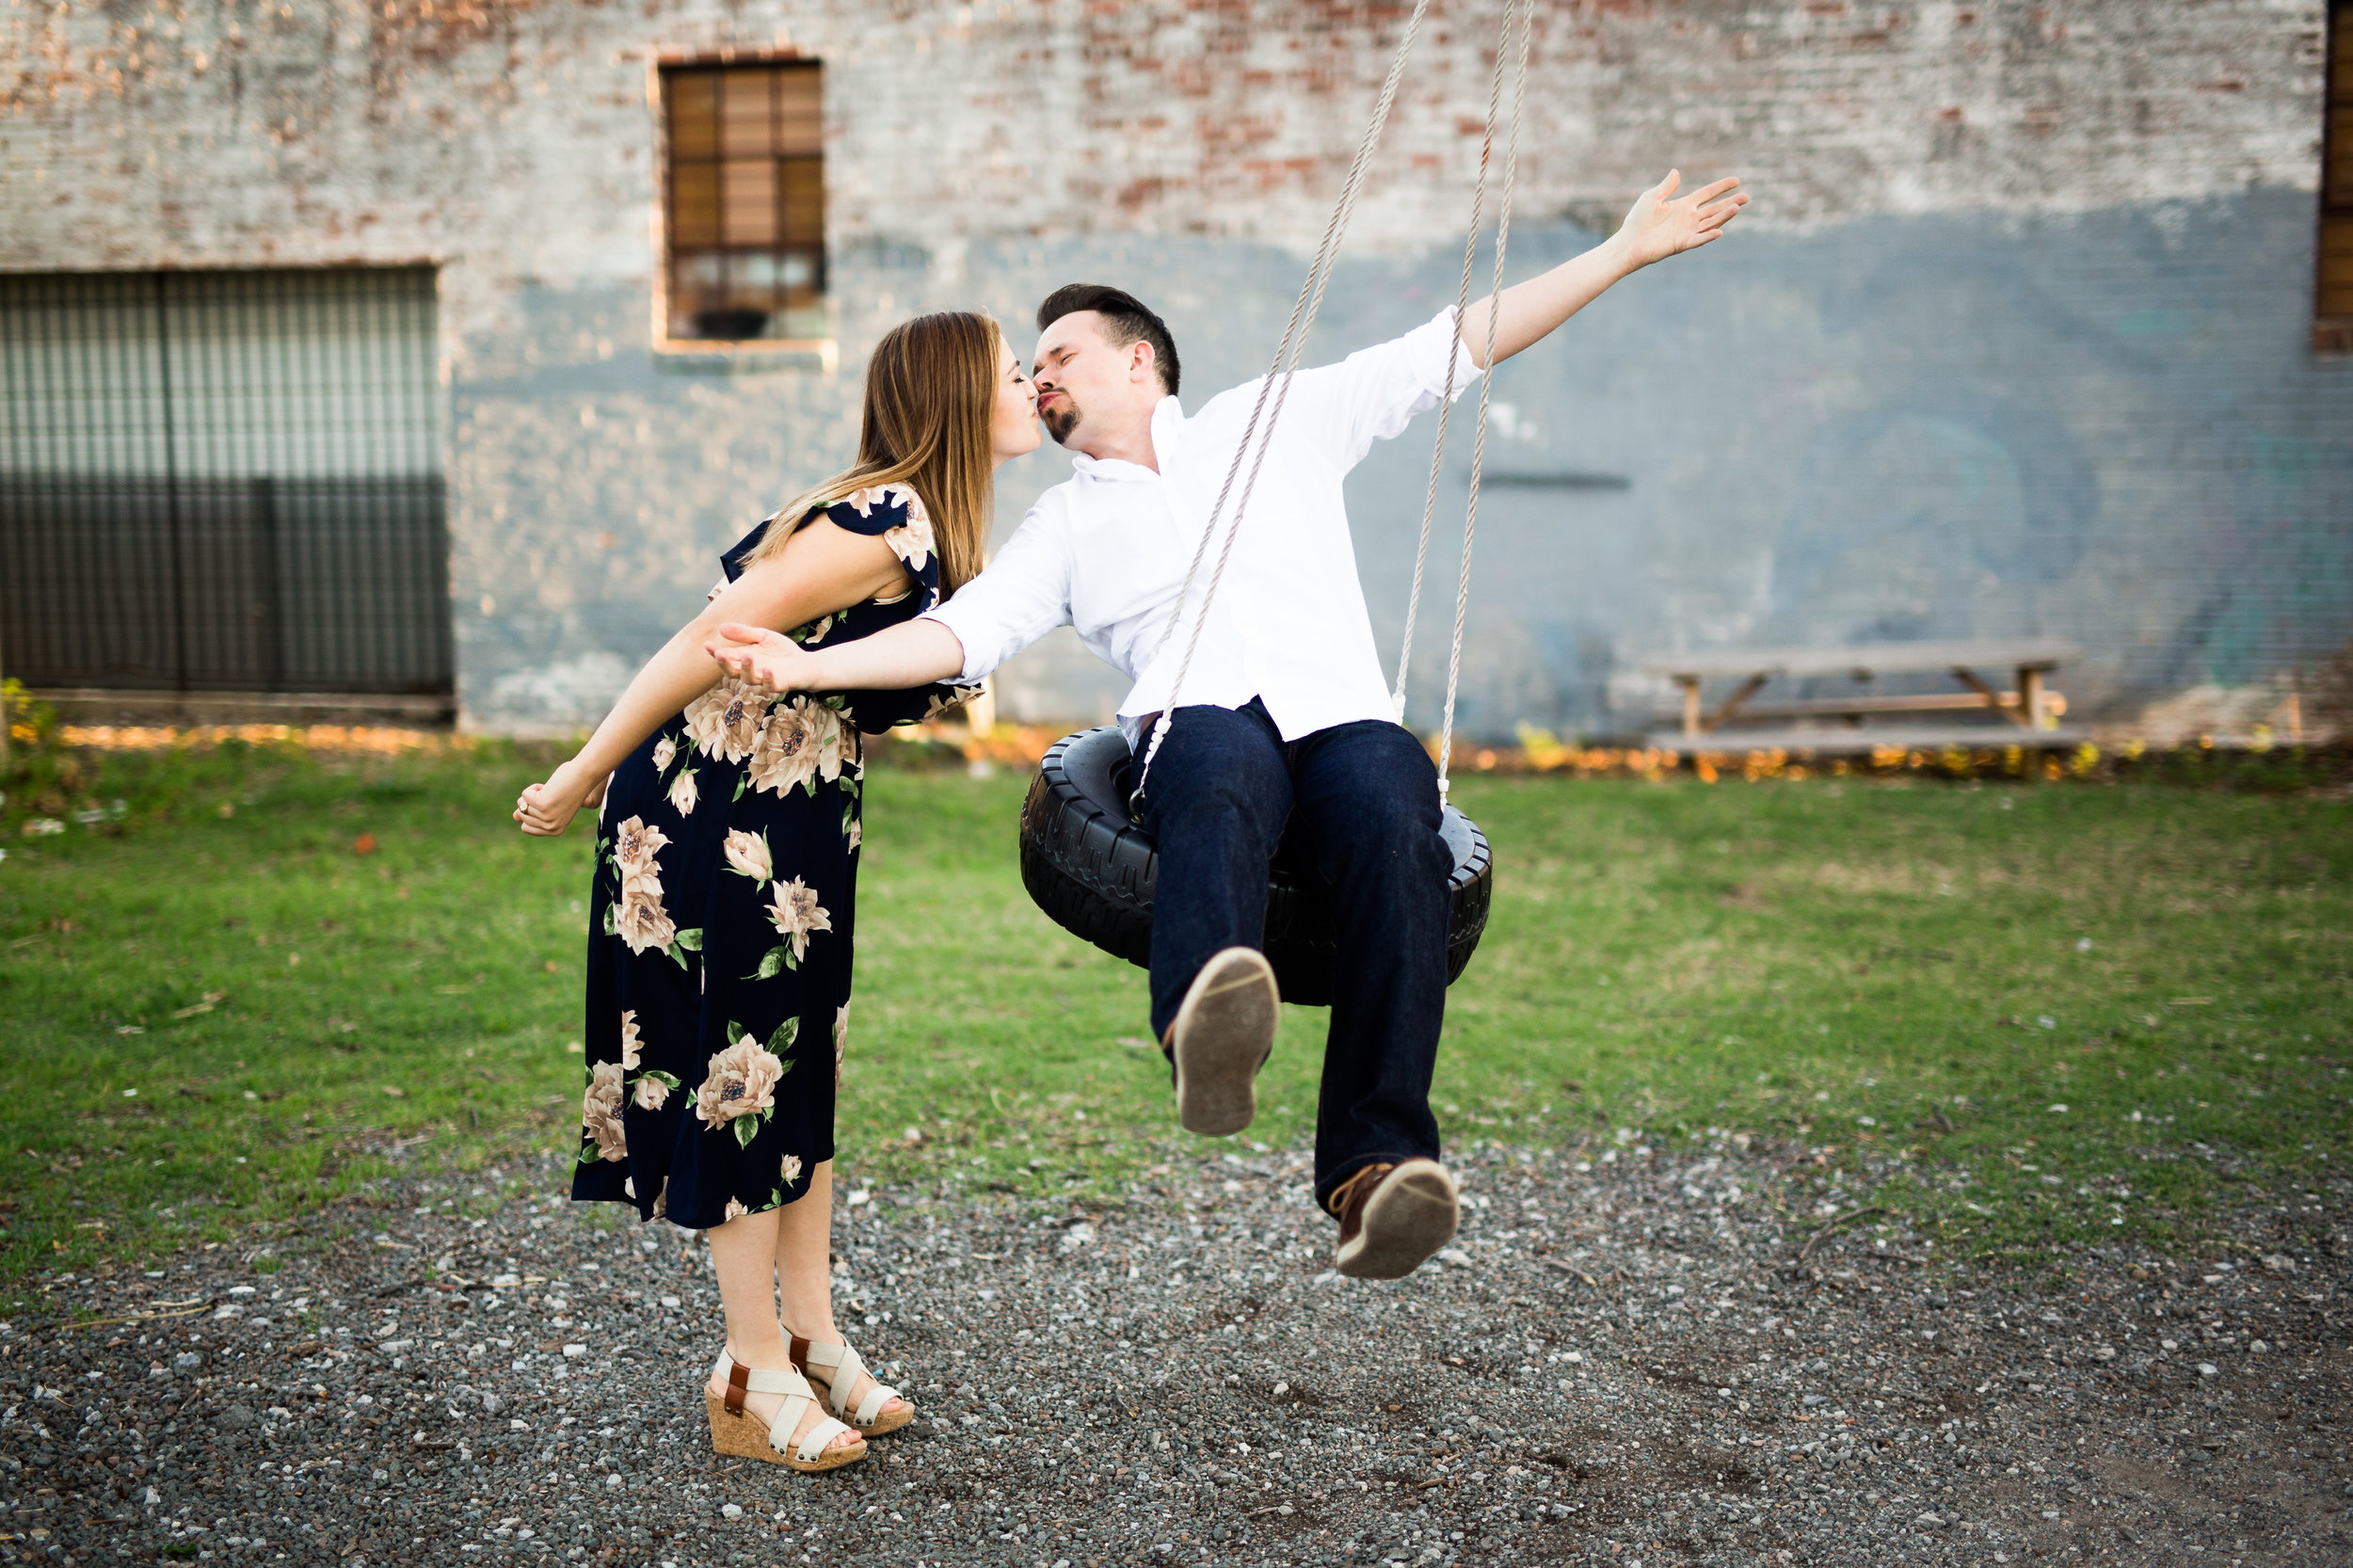 okc wedding photographer, oklahoma city, oklahoma weddings, norman, lgbt friendly, engagement session, fun engagement photos, tire swing engagement, automobile alley engagement